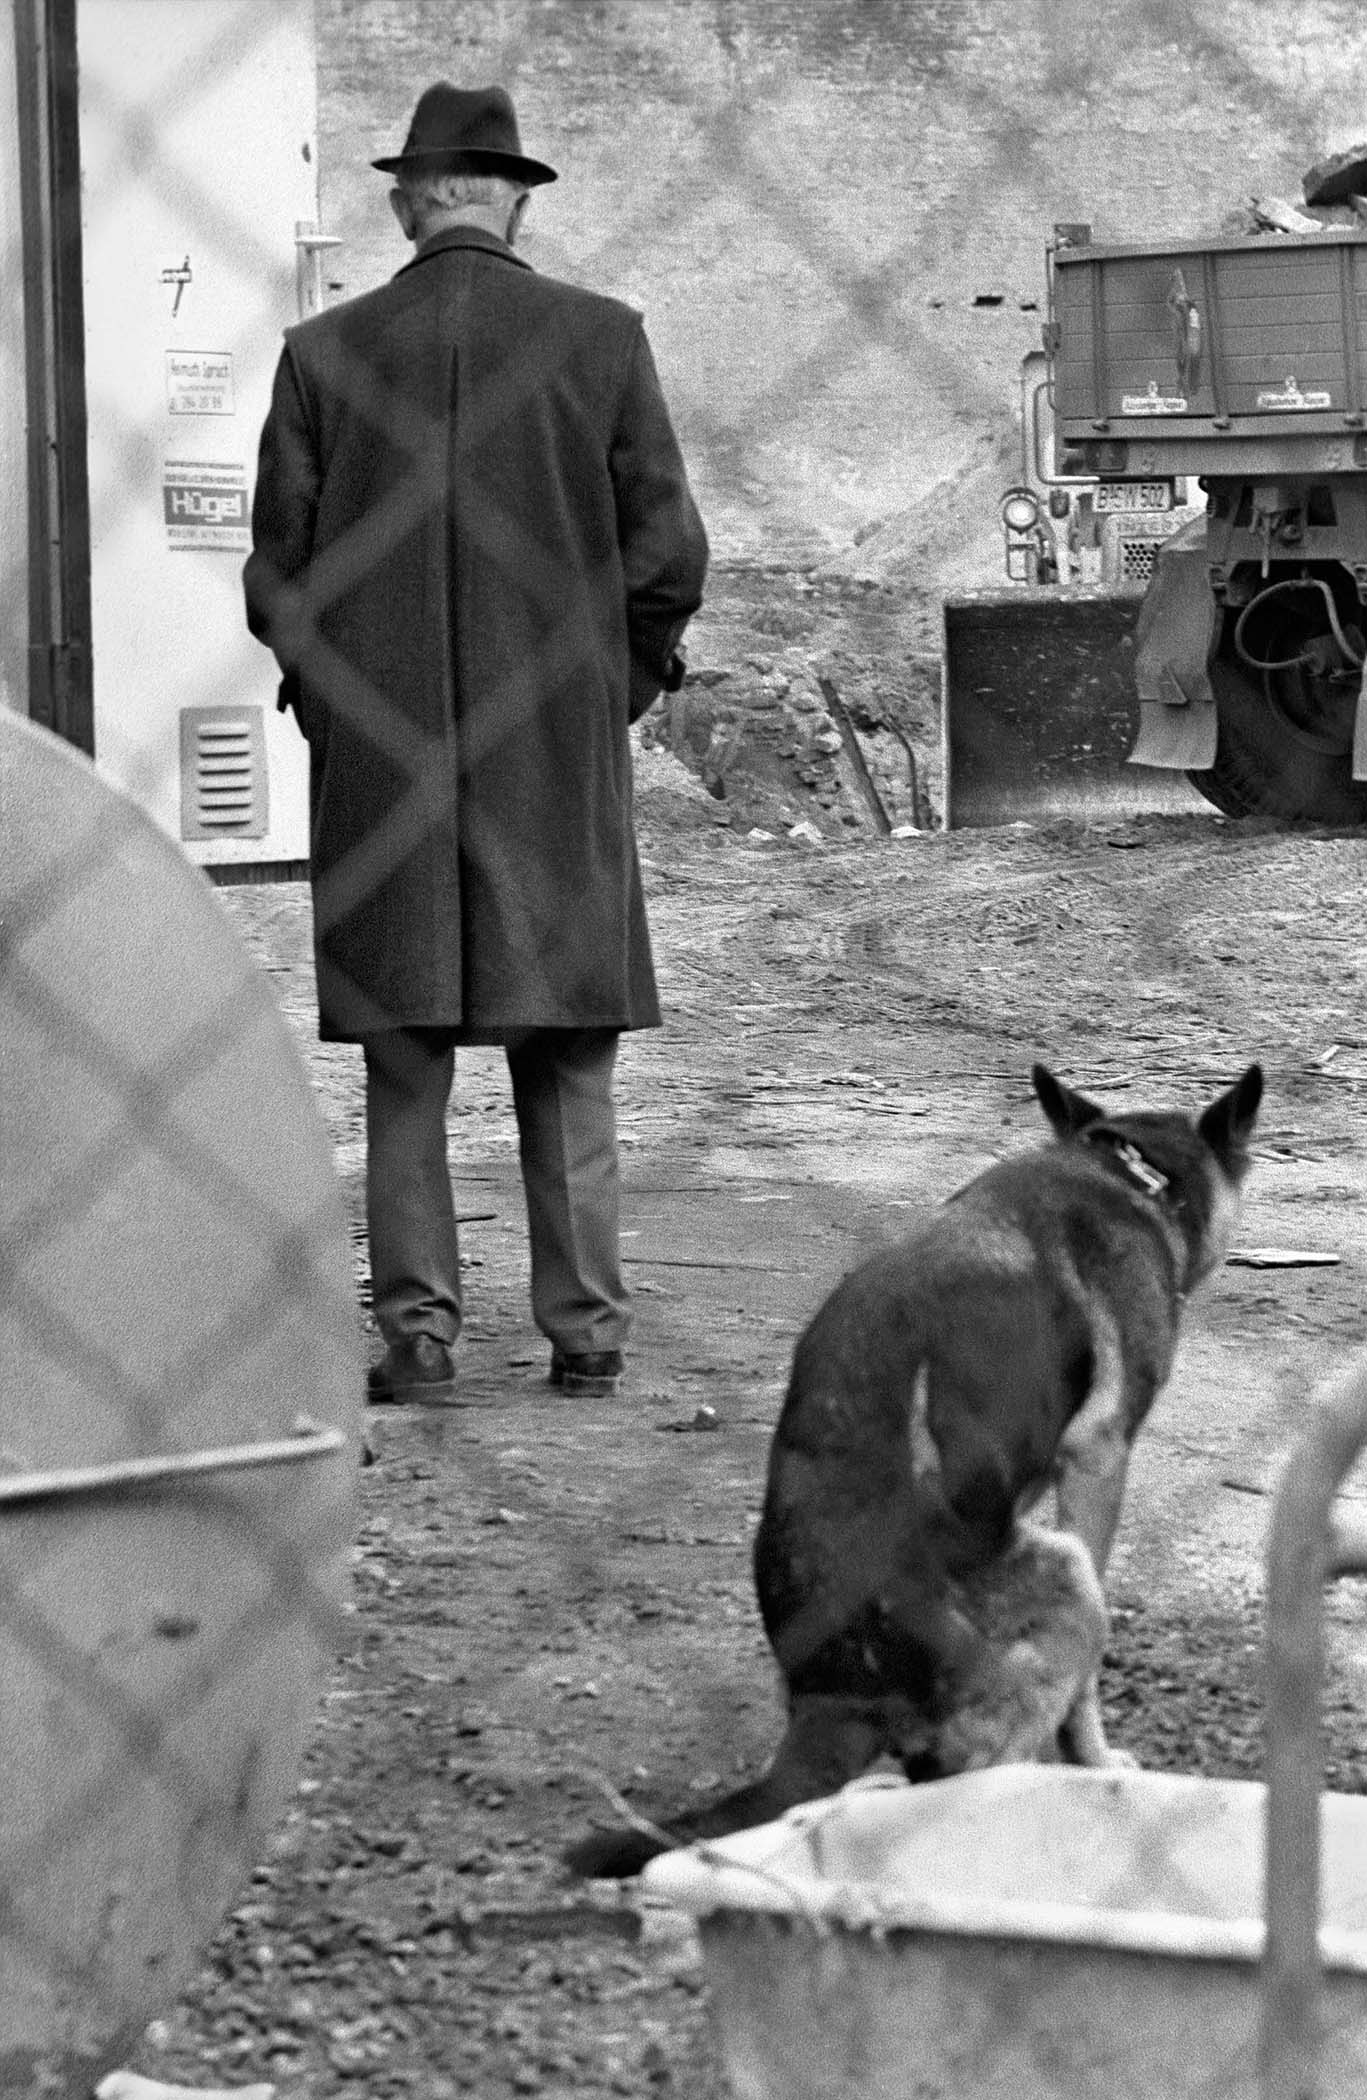 berlin3_22. Construction Site, West Berlin,1974